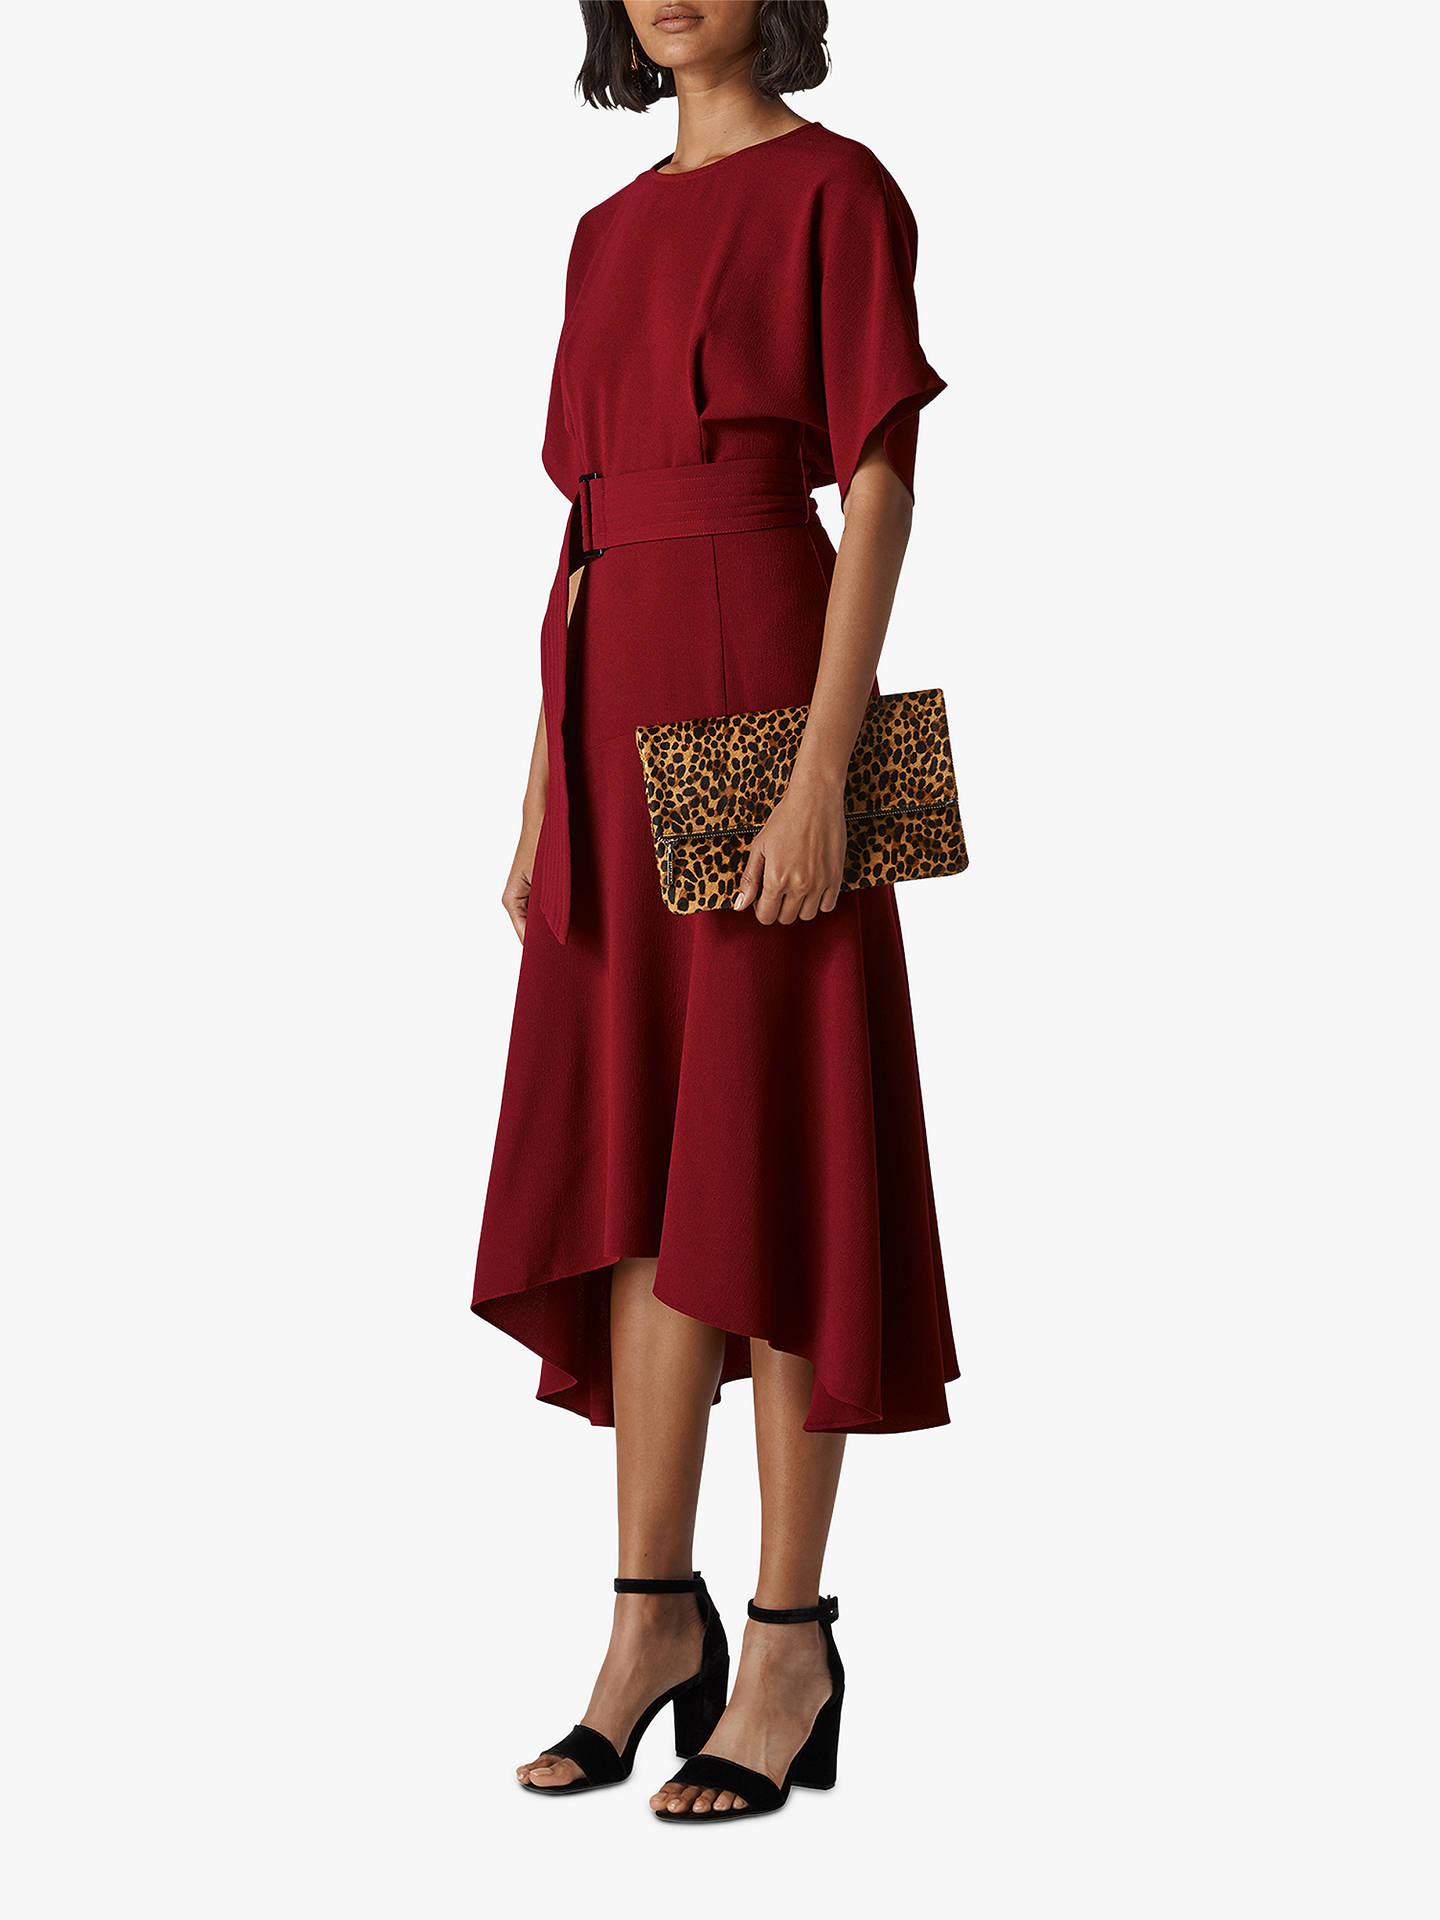 56ffcf9f9c9 Buy Whistles Textured Belted Midi Dress